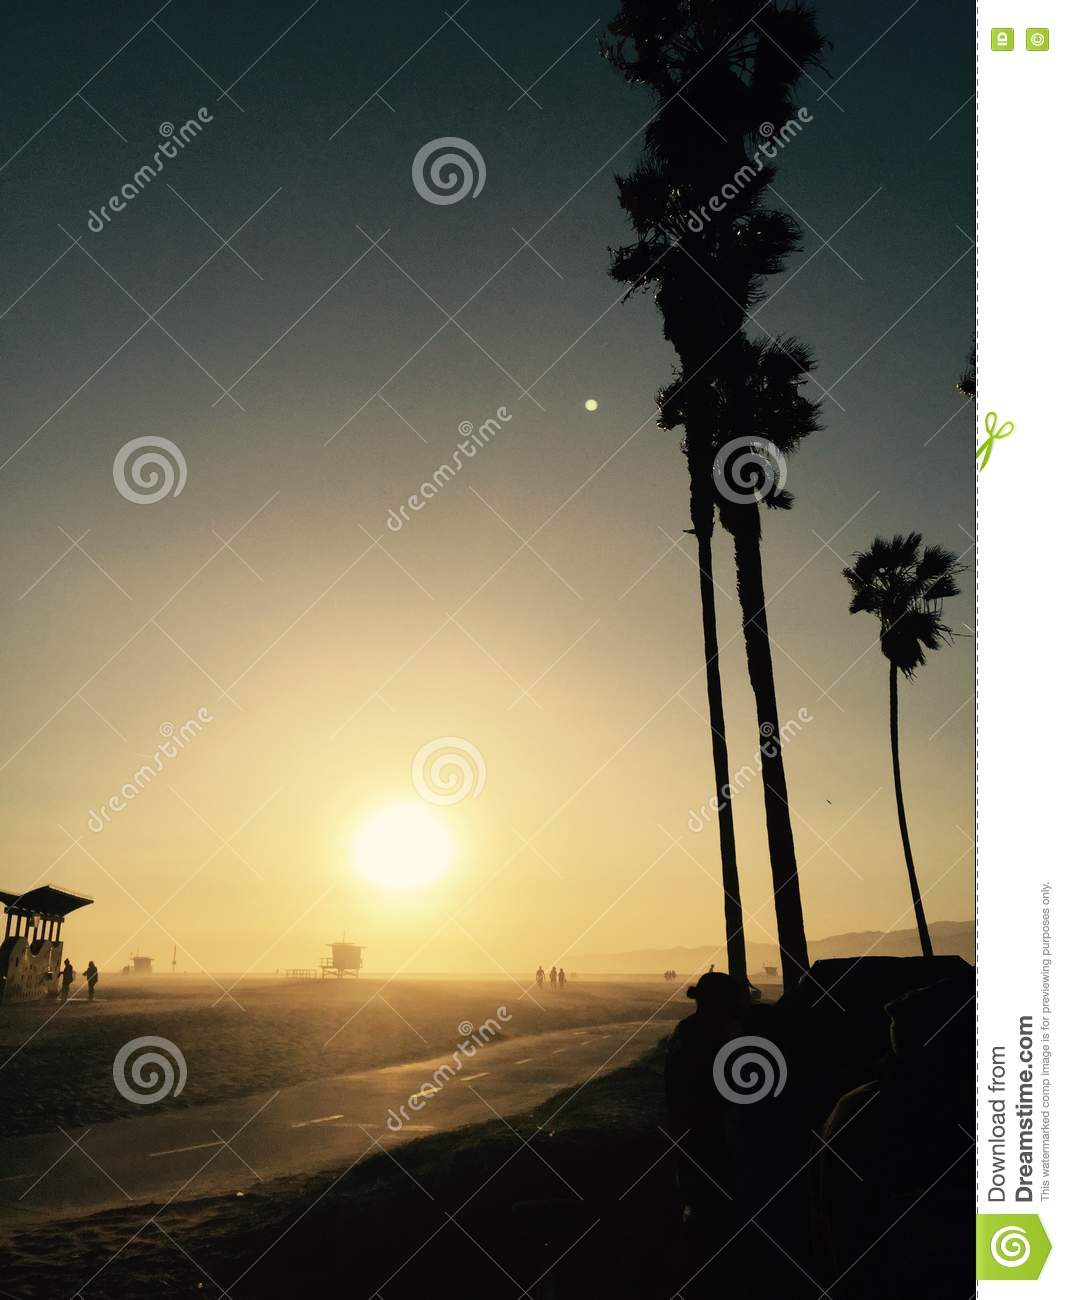 People on the beach at sunset in southern California